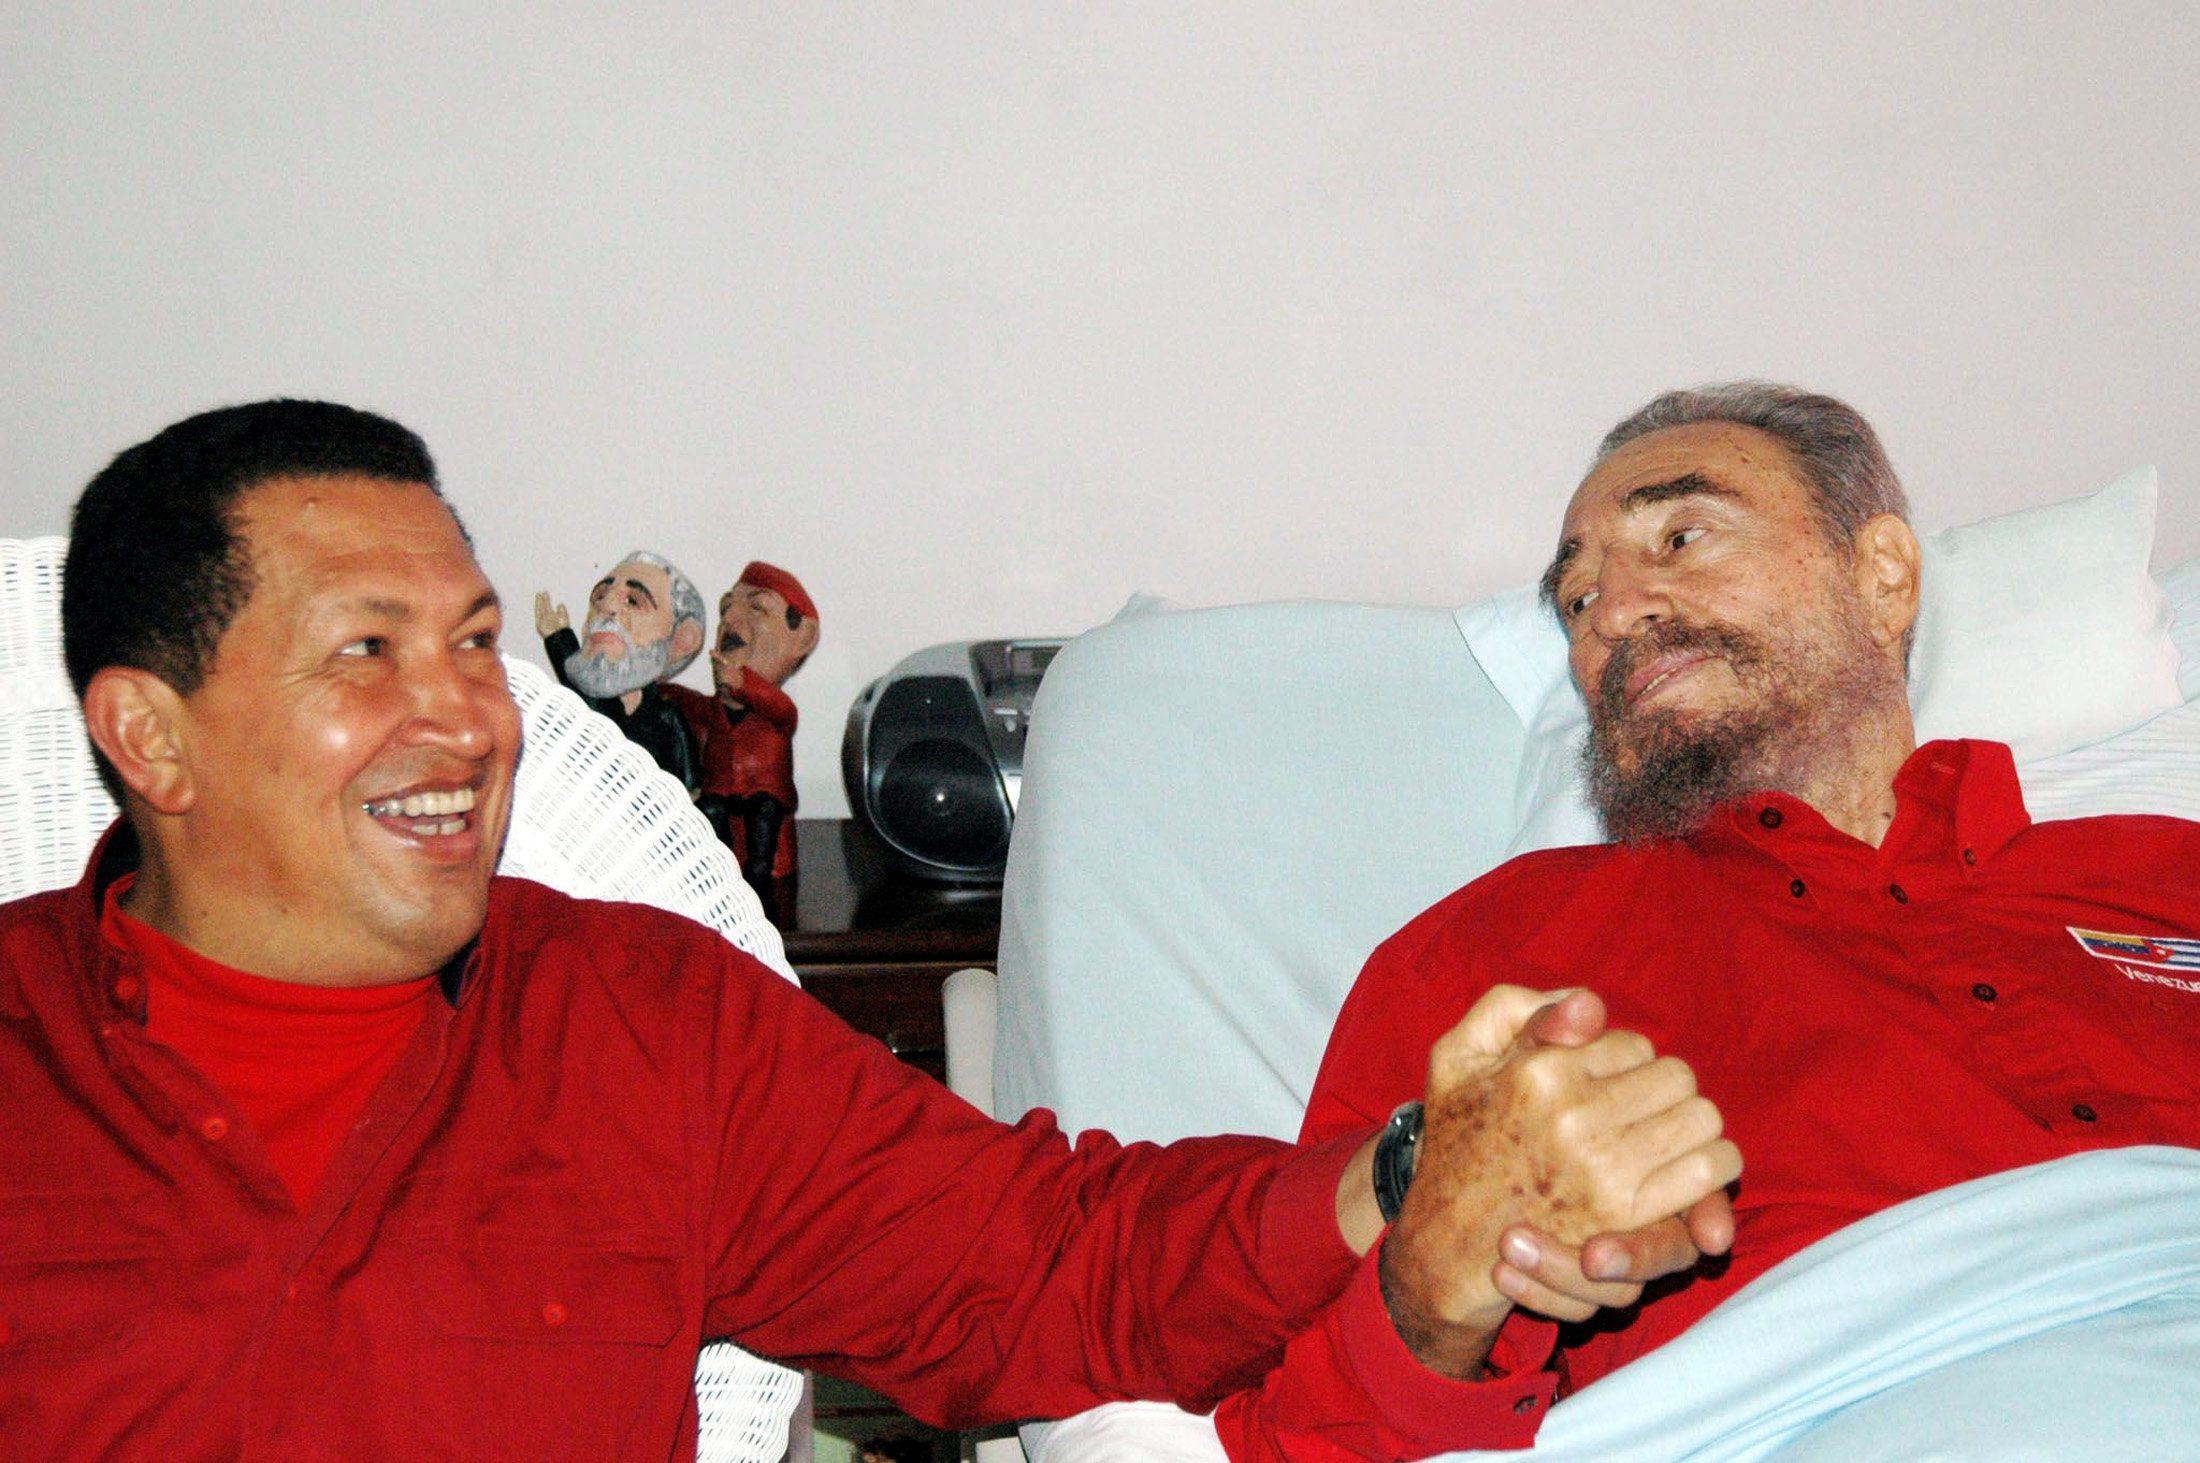 Venezuelan President Hugo Chavez (L) visits his then Cuban counterpart Fidel Castro in Havana in this August 13, 2006 file photo. REUTERS/Estudios Revolucion-Granma/Handout/File Photo      ATTENTION EDITORS - THIS IMAGE WAS PROVIDED BY A THIRD PARTY. EDITORIAL USE ONLY.